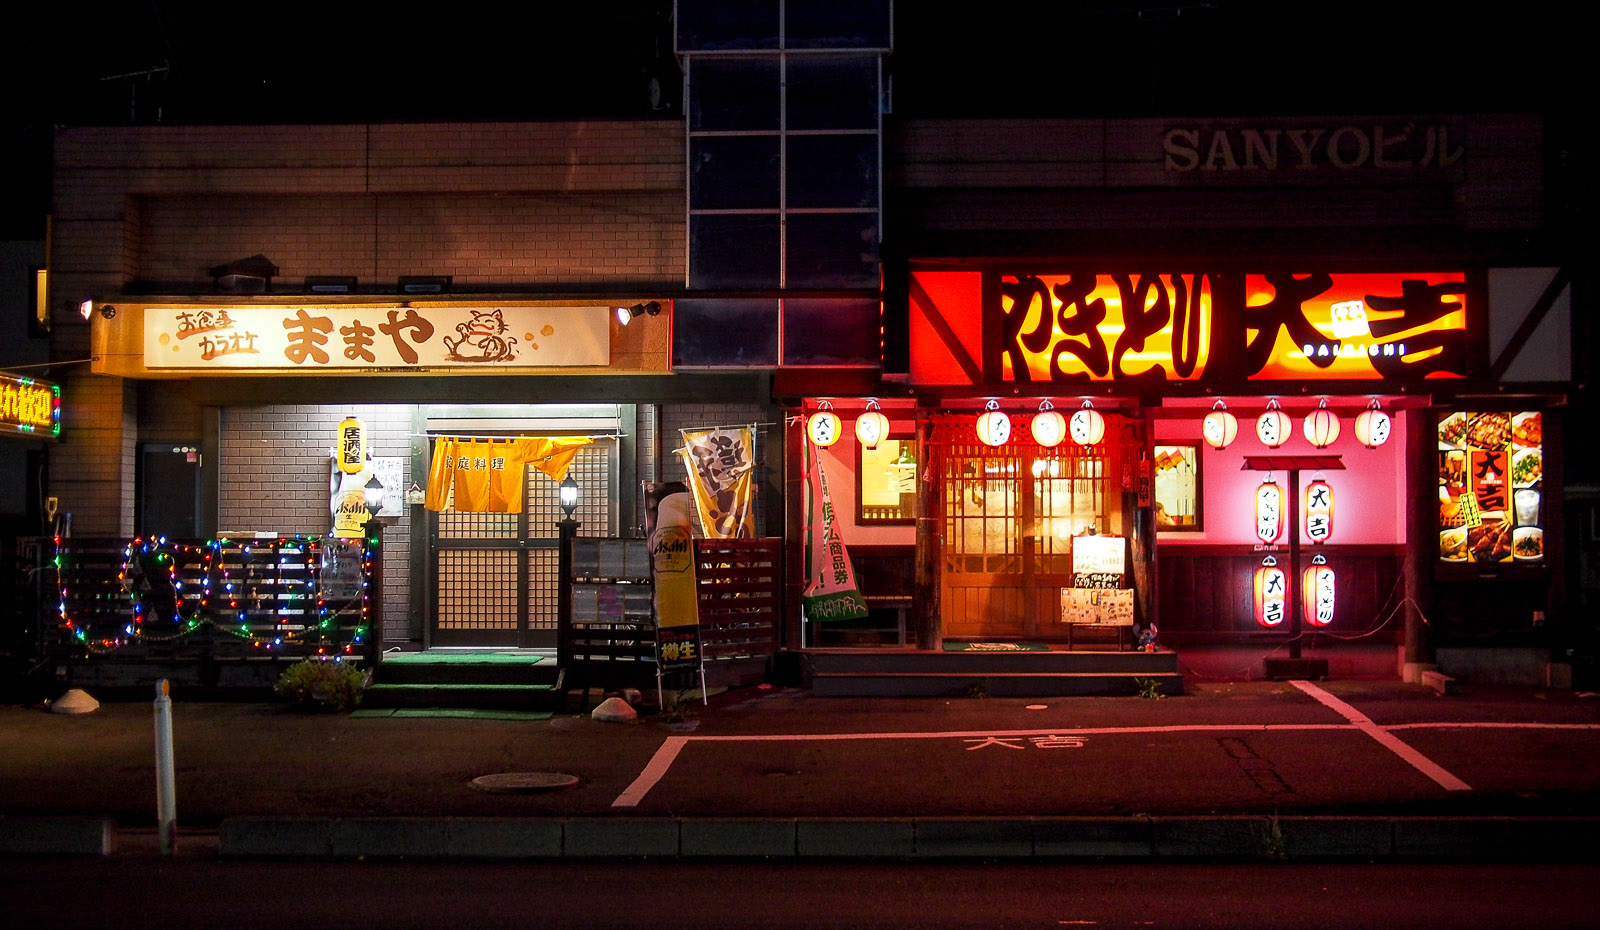 We went in search for a 100 yen shop, which is a shop where everything costs more or less 100 yens. This is a shot I took on the way there. I like the red lighting on the shop's facade.